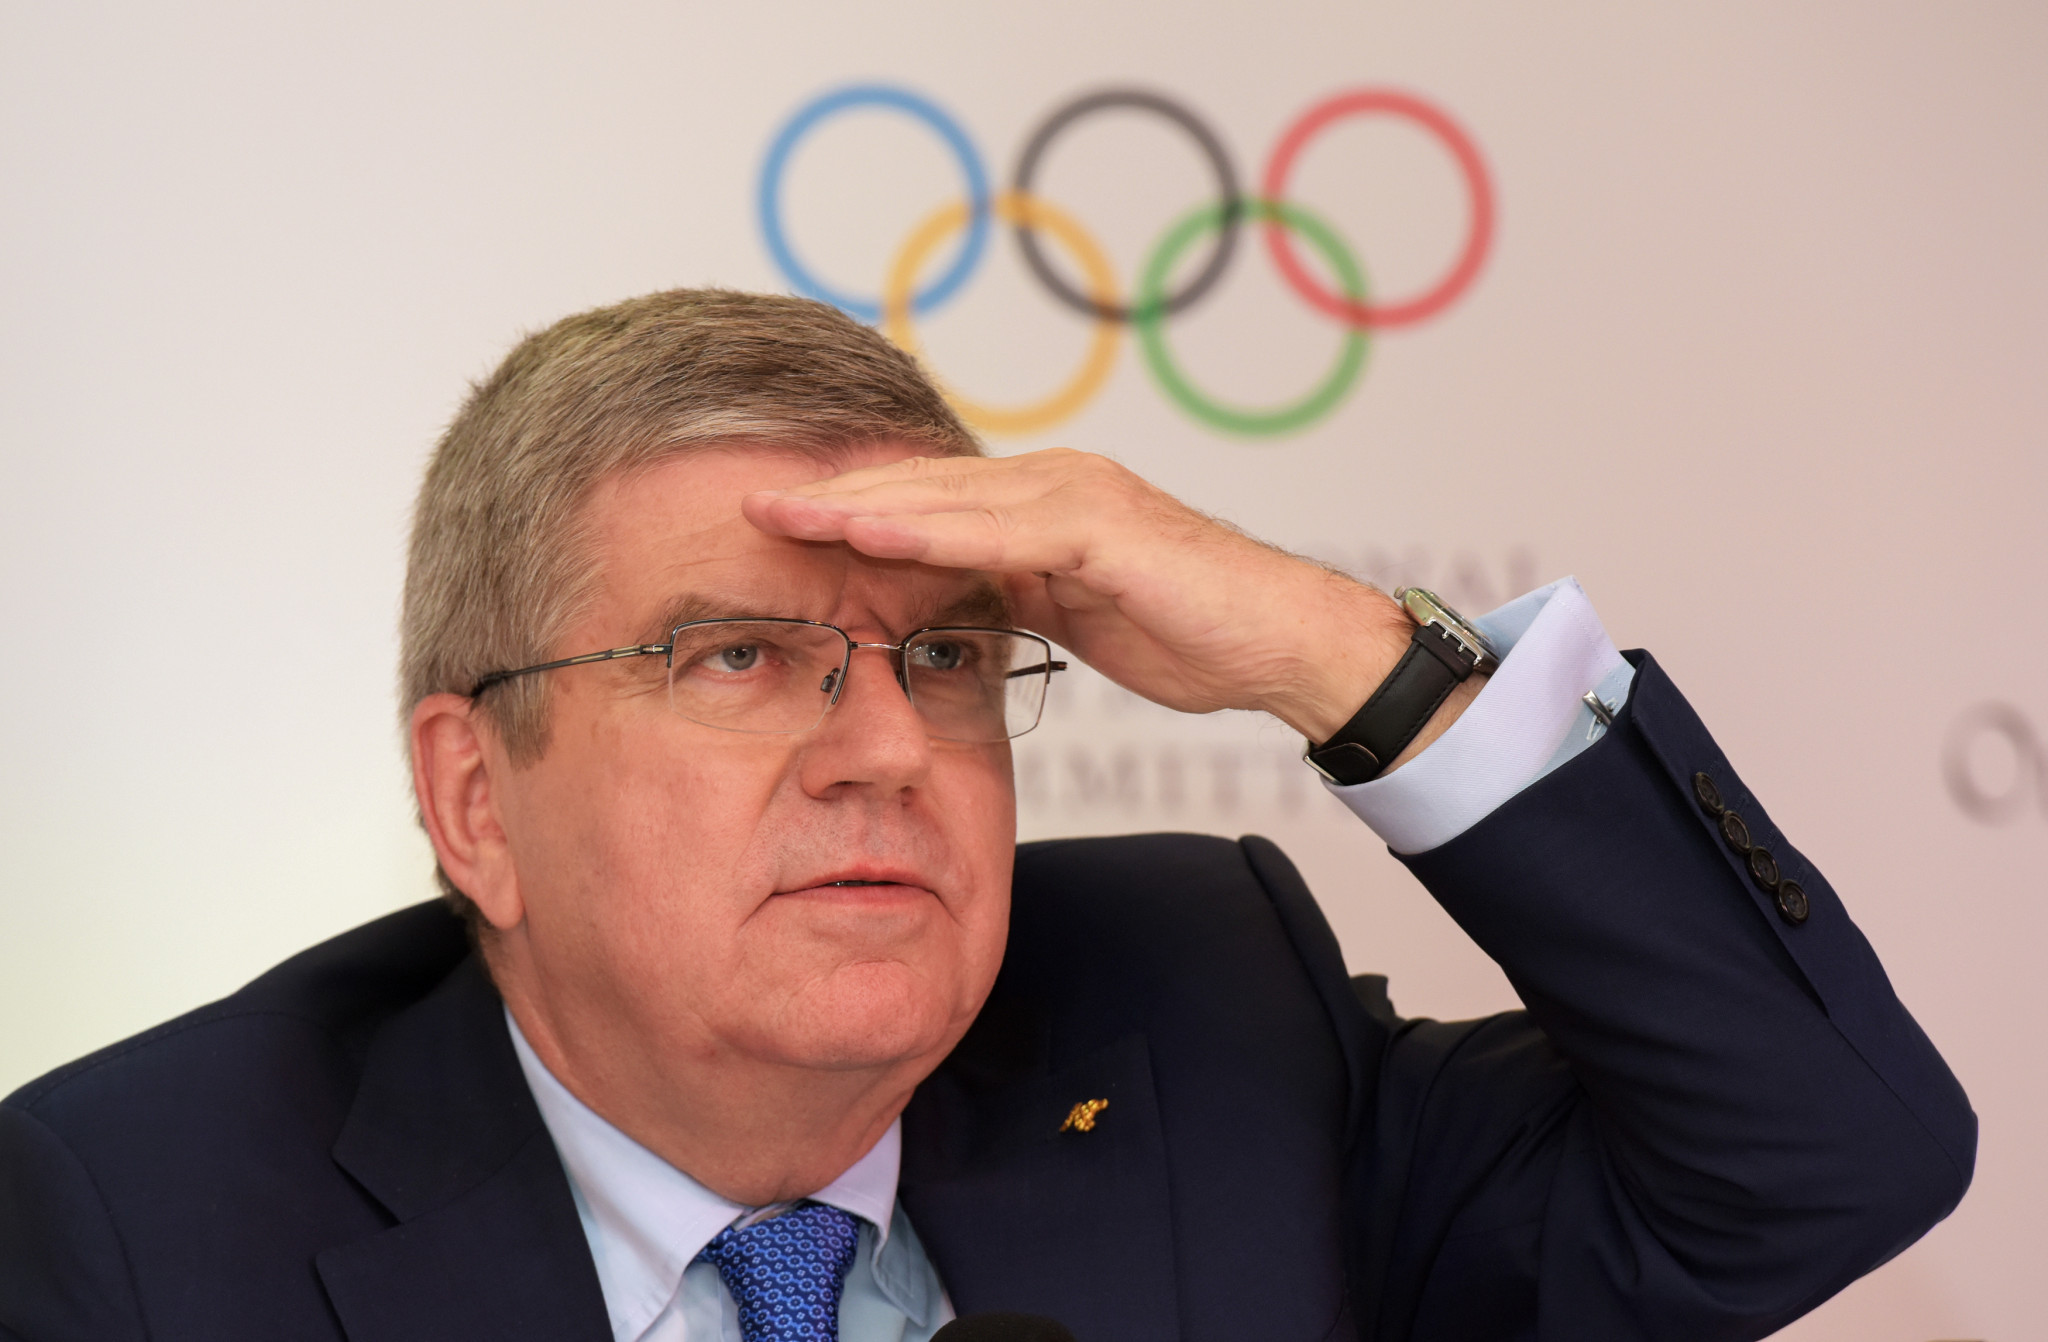 IOC urge AIBA to do more to resolve problems as concerns remain